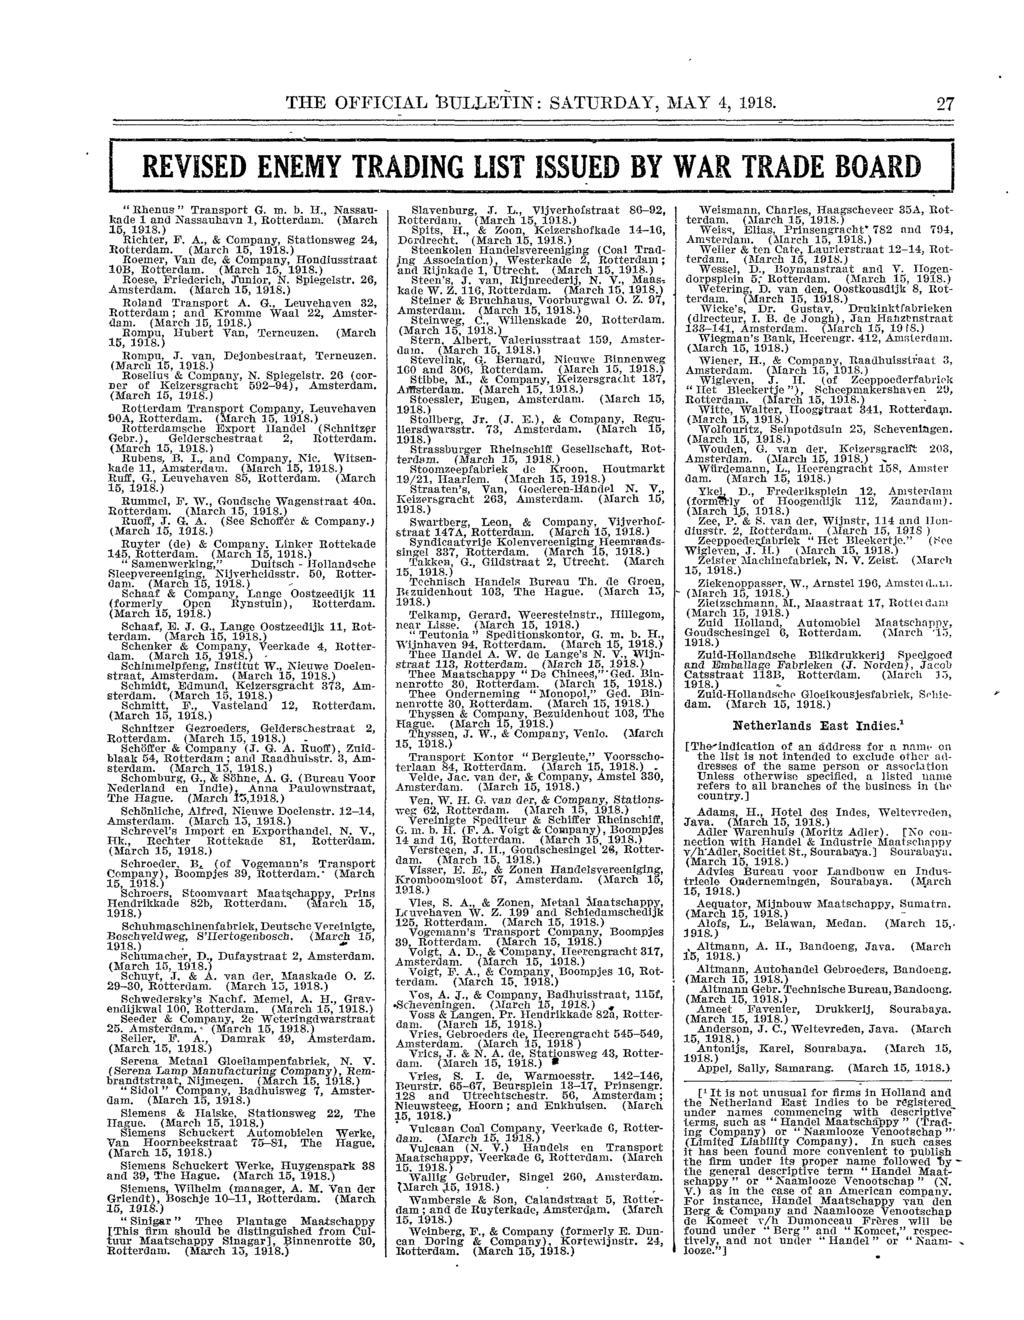 Revised And Enlarged Enemy Trading List In This Issue Jtoial The Little Things She Needs Samara 10b Black Official 1bulletin Saturday May 4 1918 27